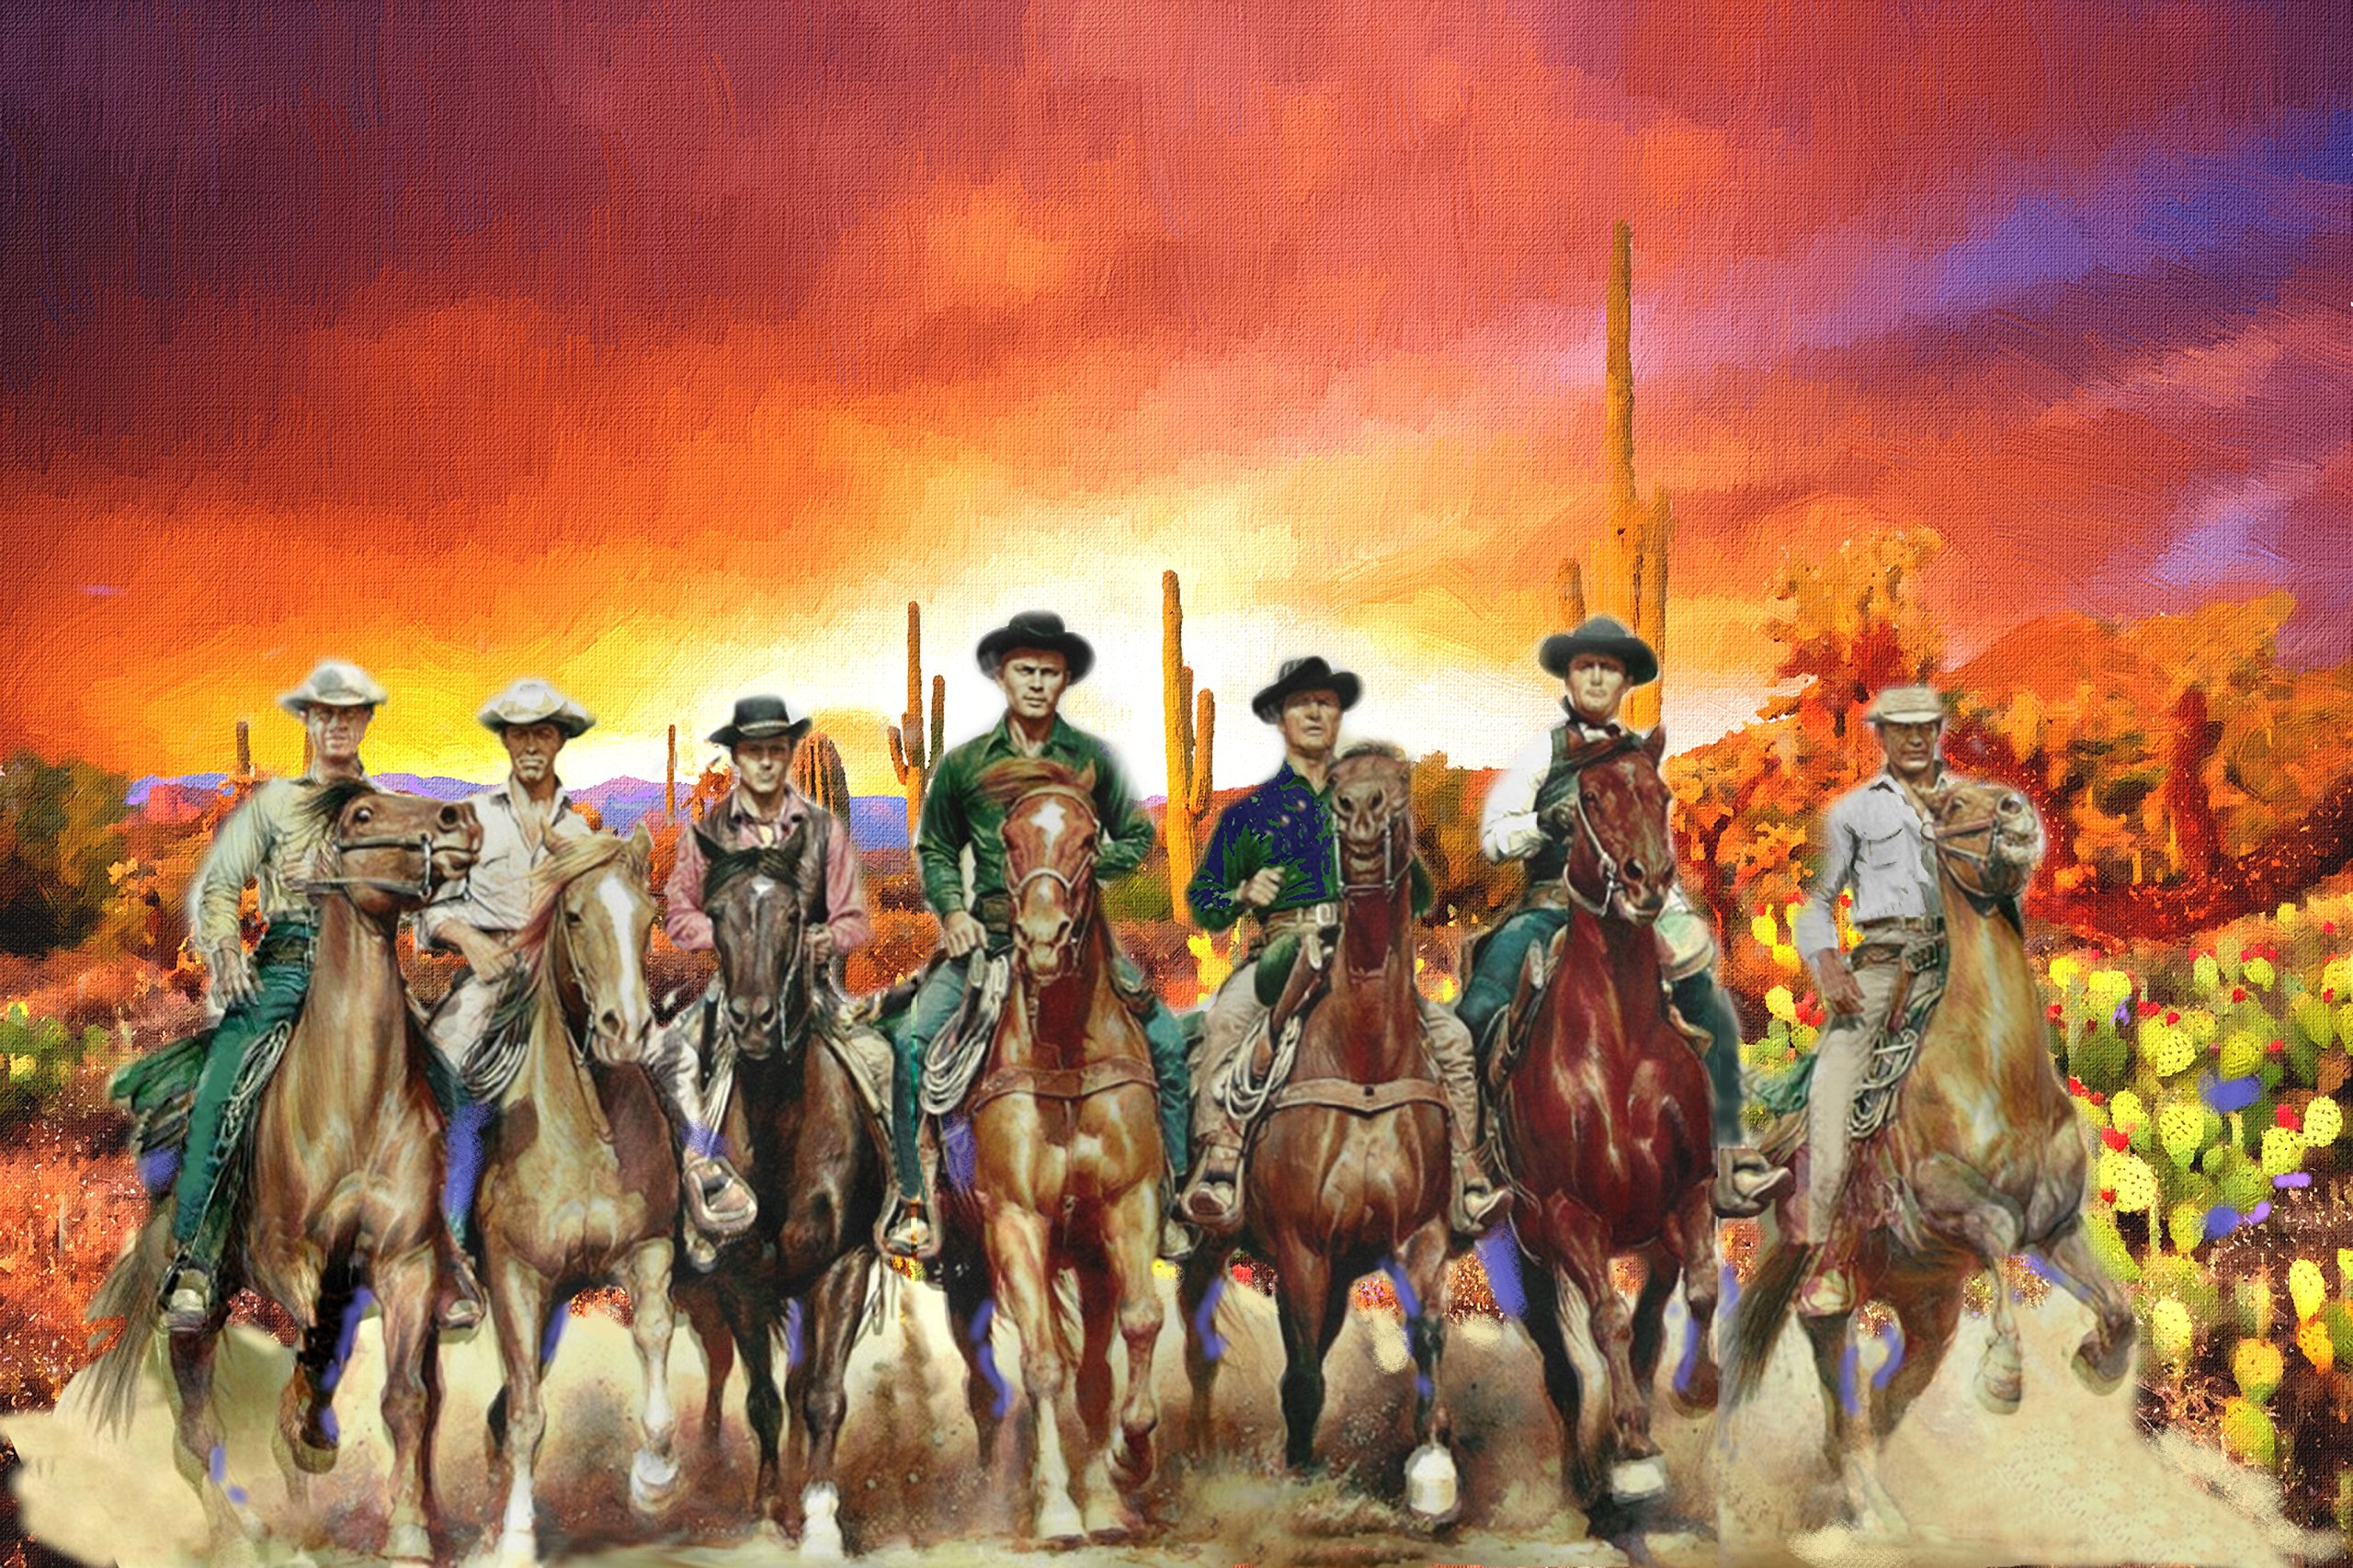 XXL 20 x 30 Poster The Magnificent Seven 7, Digital Oil Painting Old West Movie 1960